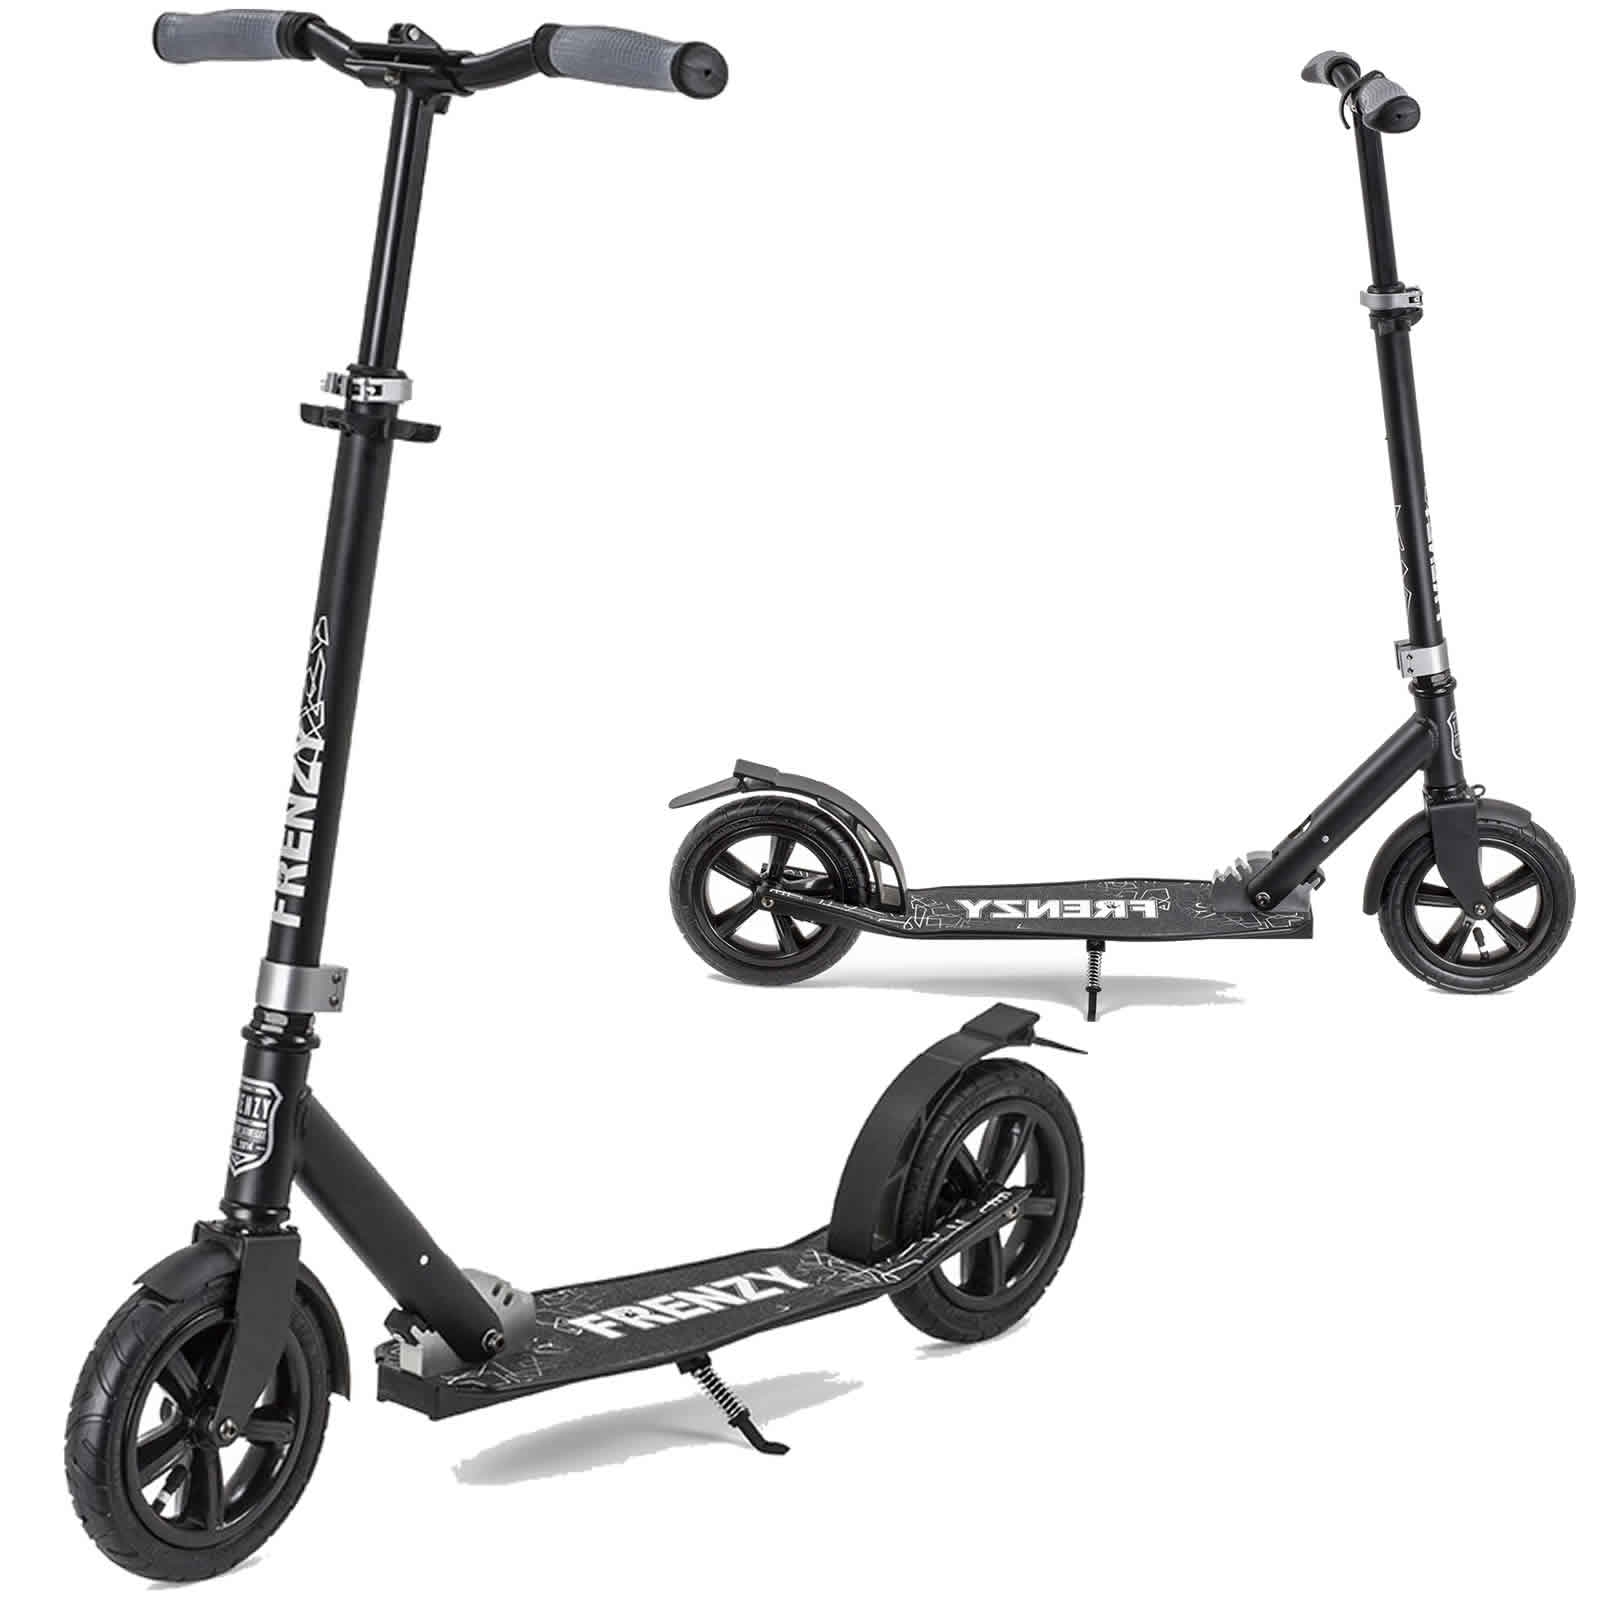 An image of Frenzy 205mm Pneumatic Folding Scooter - Black / Black